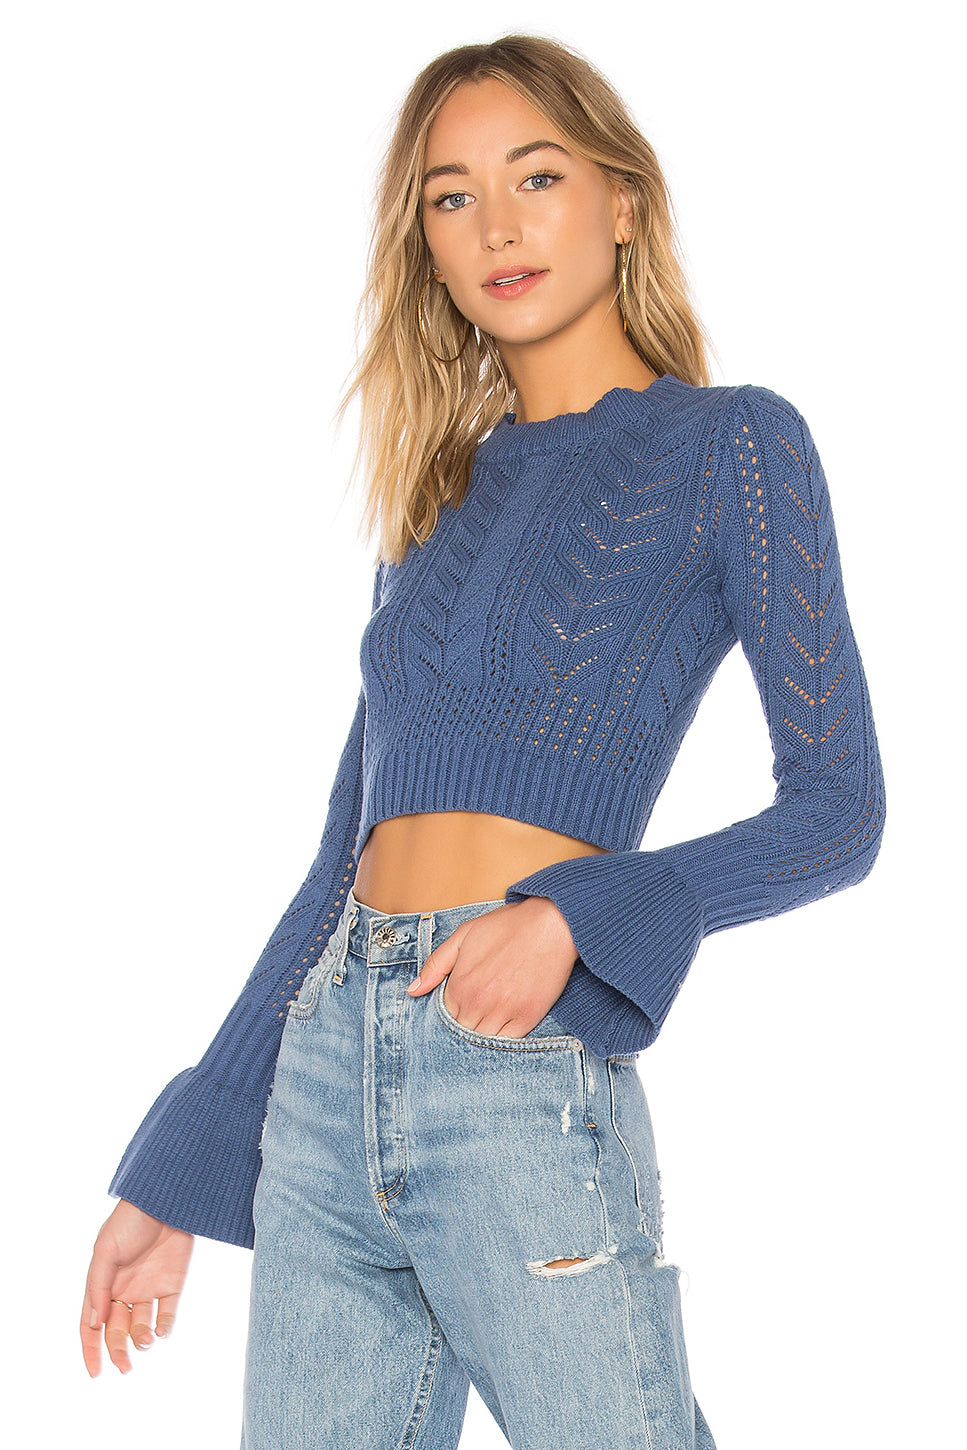 Bedford Sweater